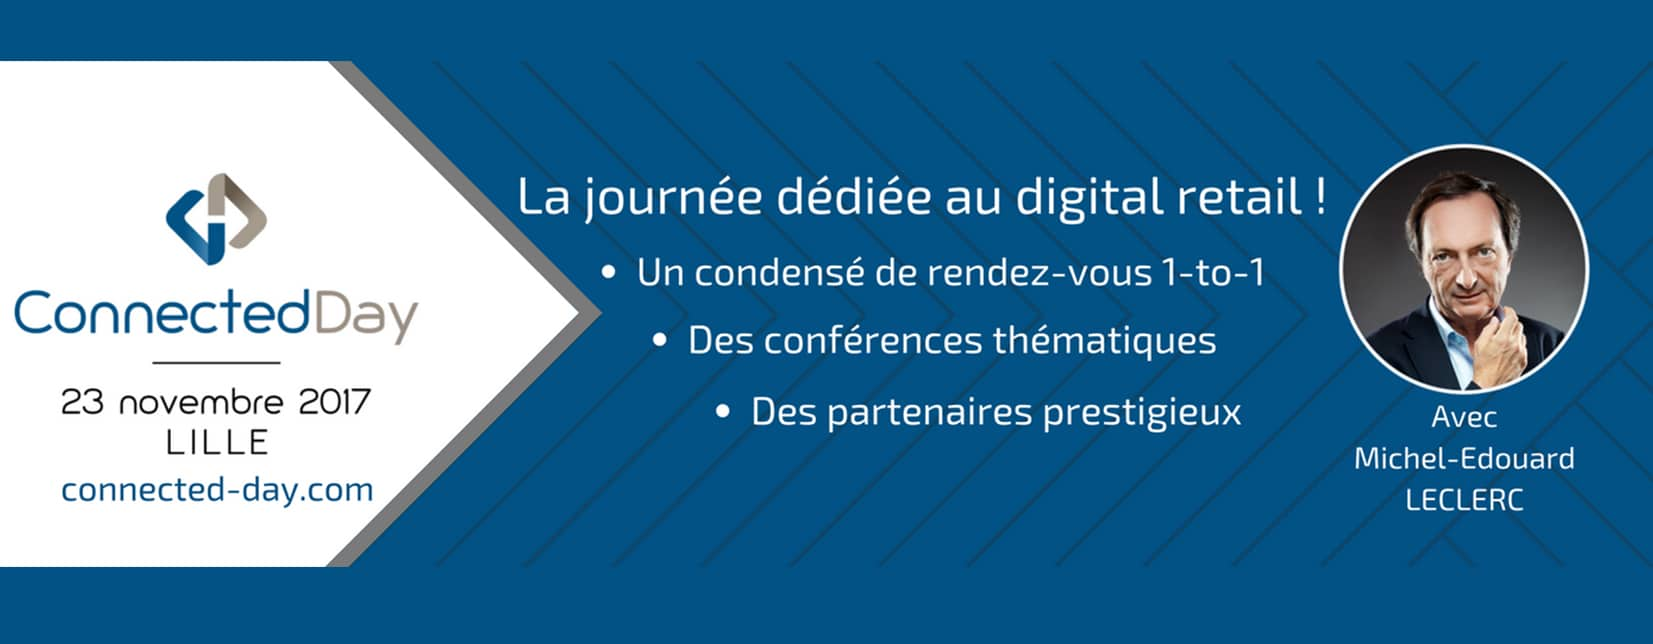 journee du digital